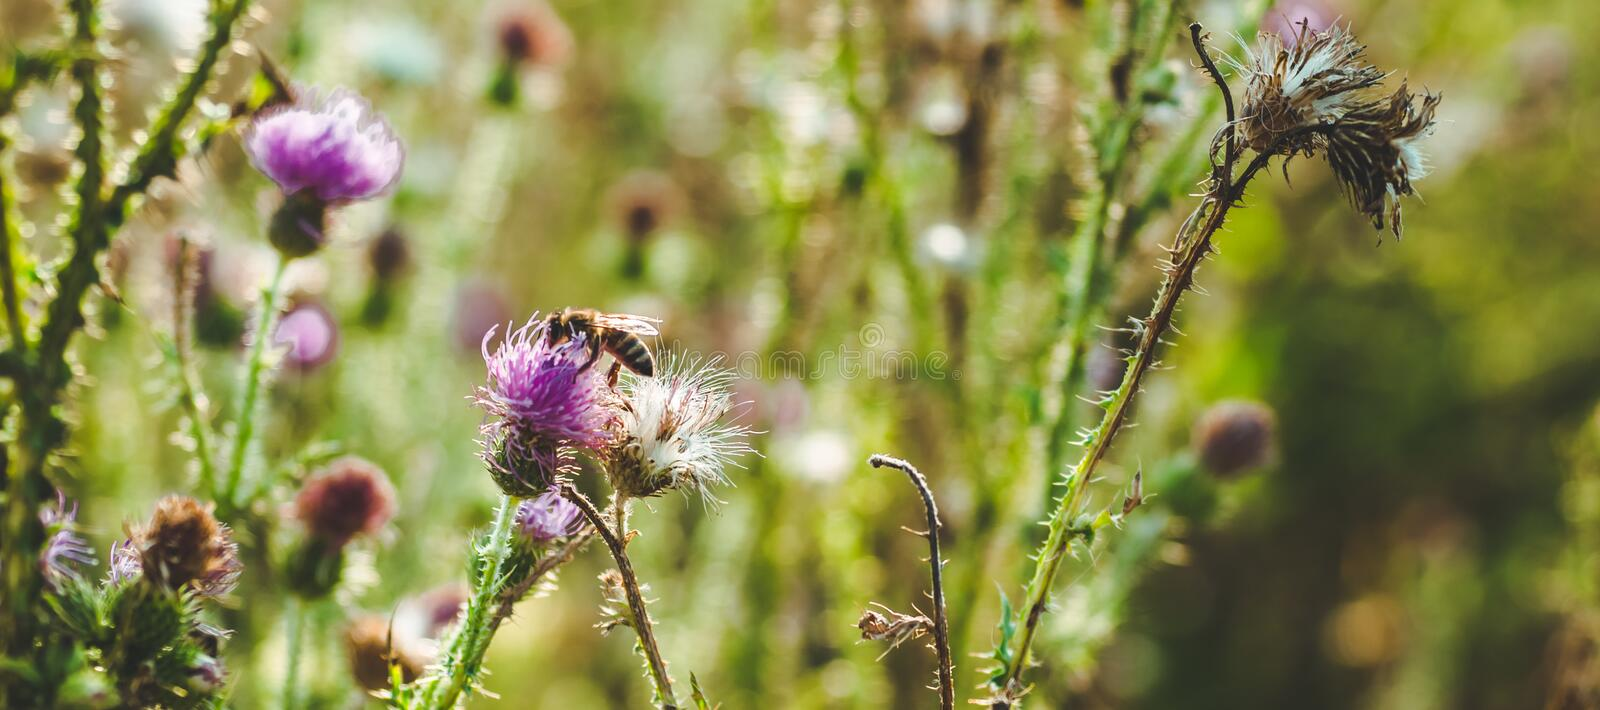 Pink milk thistle flowers in wild natur with bee collecting pollen, Silybum marianum herbal remedy, Saint Mary`s Thistle royalty free stock photo